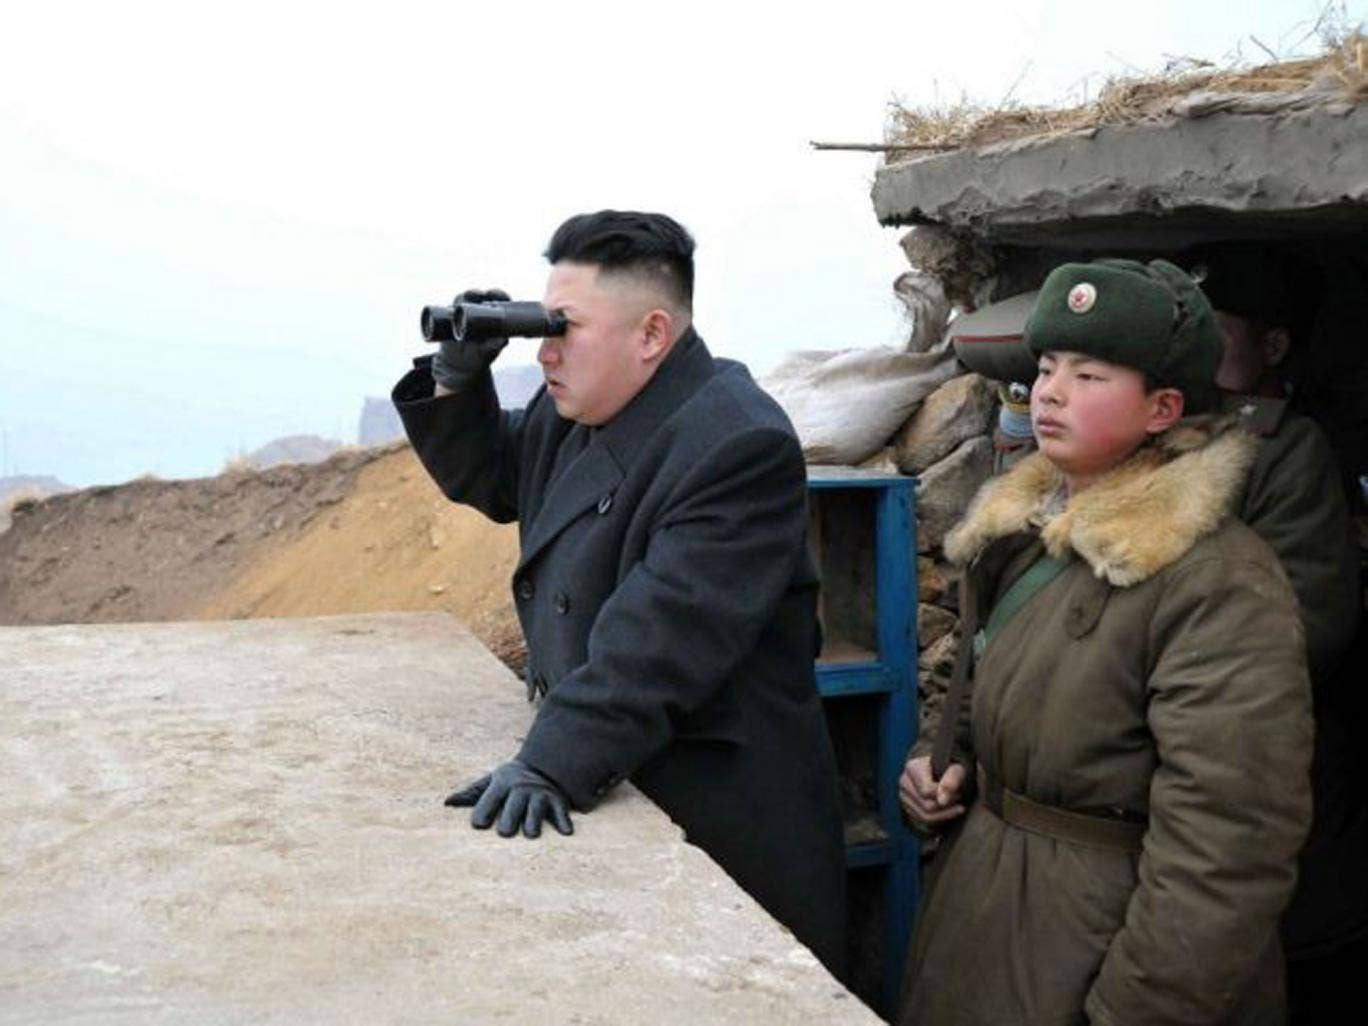 North Korean leader Kim Jong Un, center, uses binoculars to look at the South's territory from an observation post at the military unit on Jangjae islet